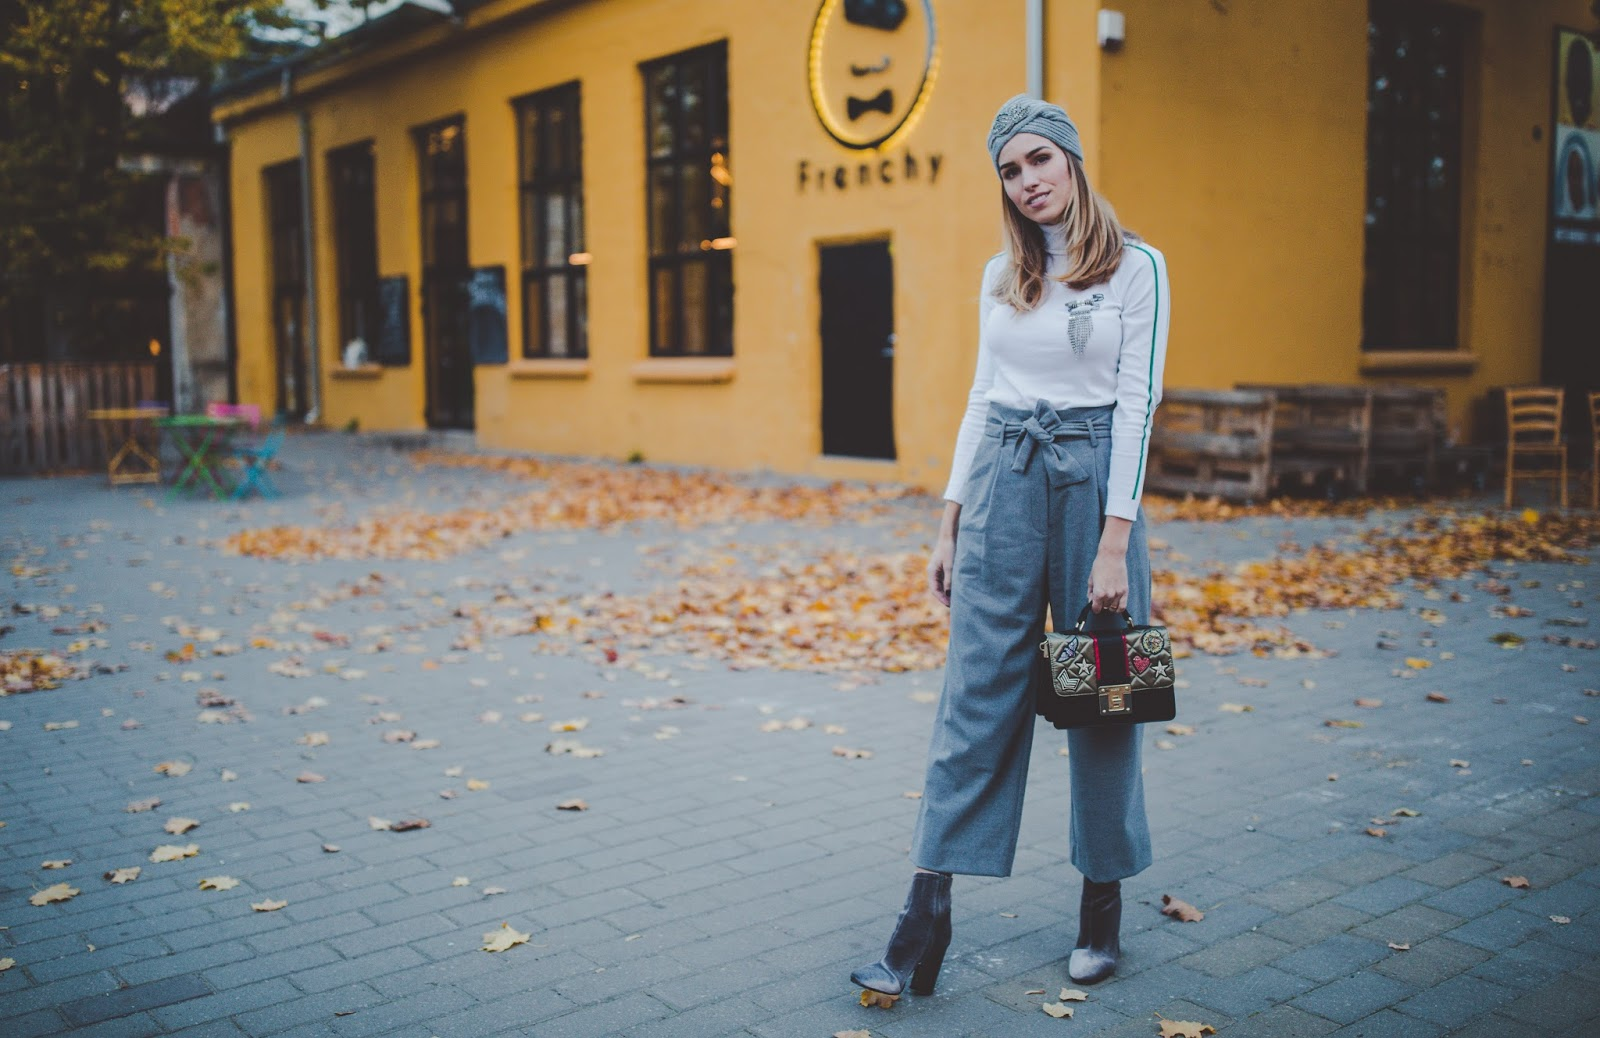 culotte pants velvet boots outfit fall